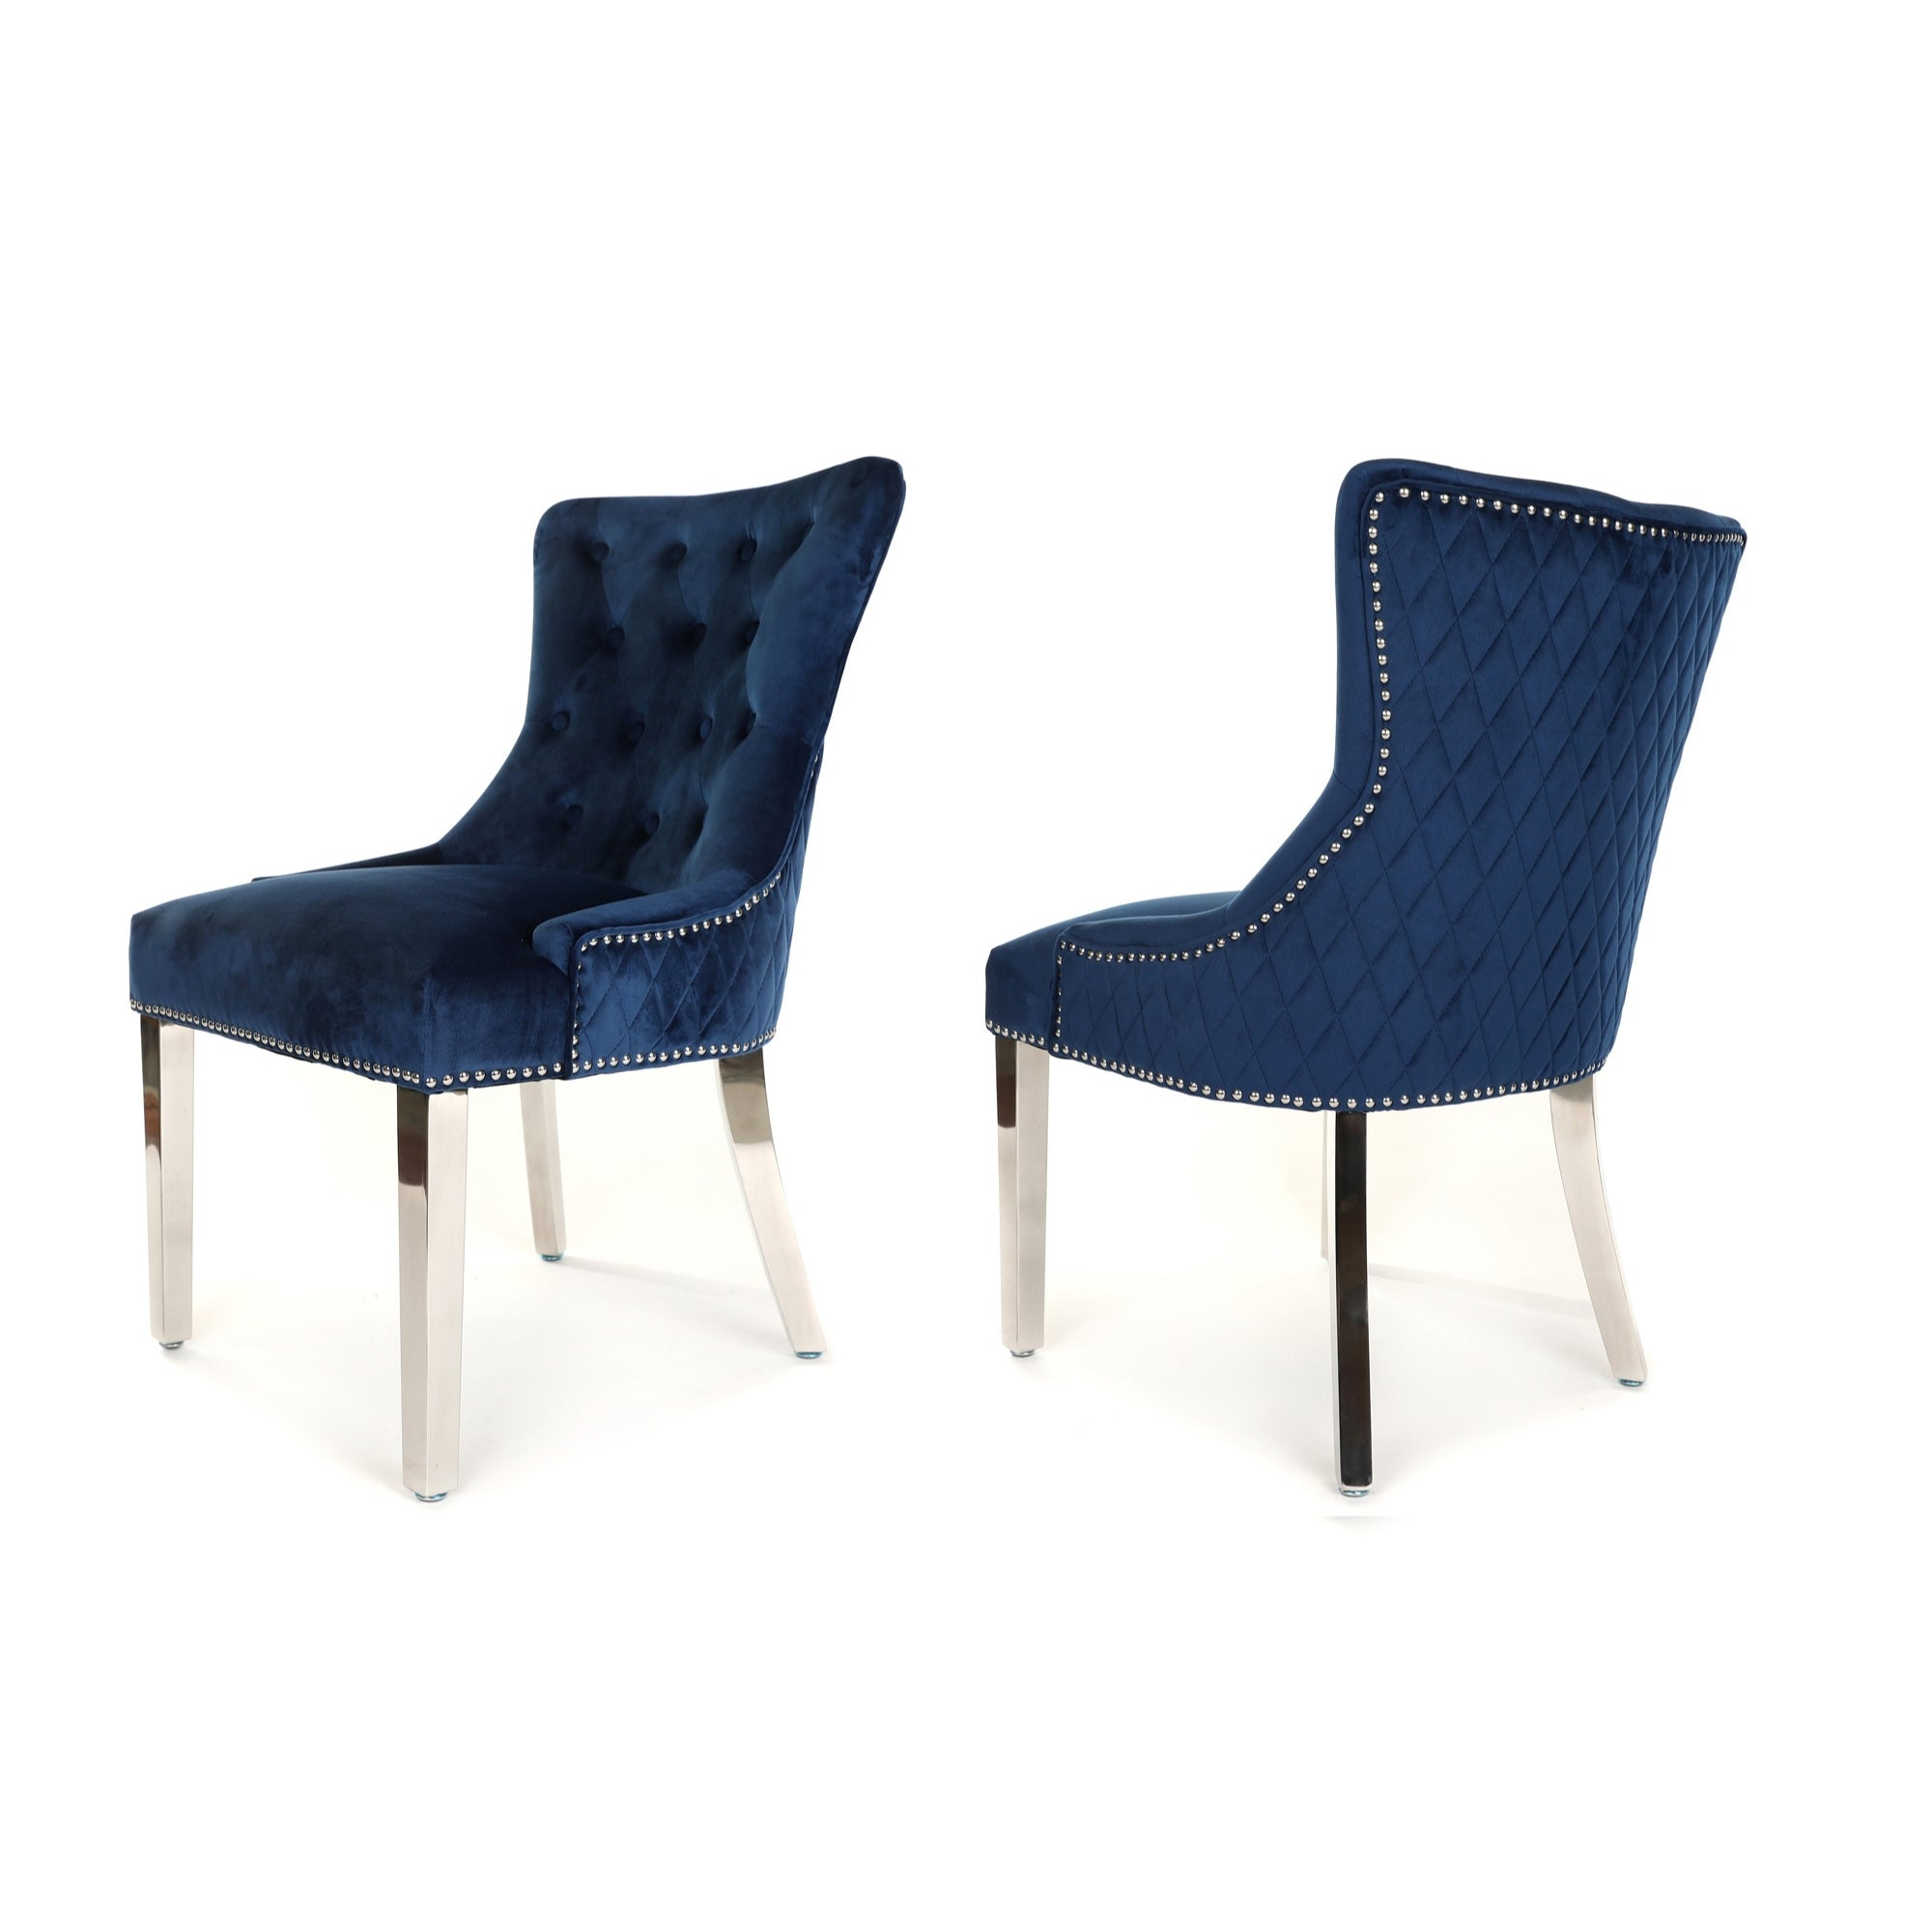 Simone Dining Chair upholstered in blue velvet with stud detail, plain quilted back and metal legs